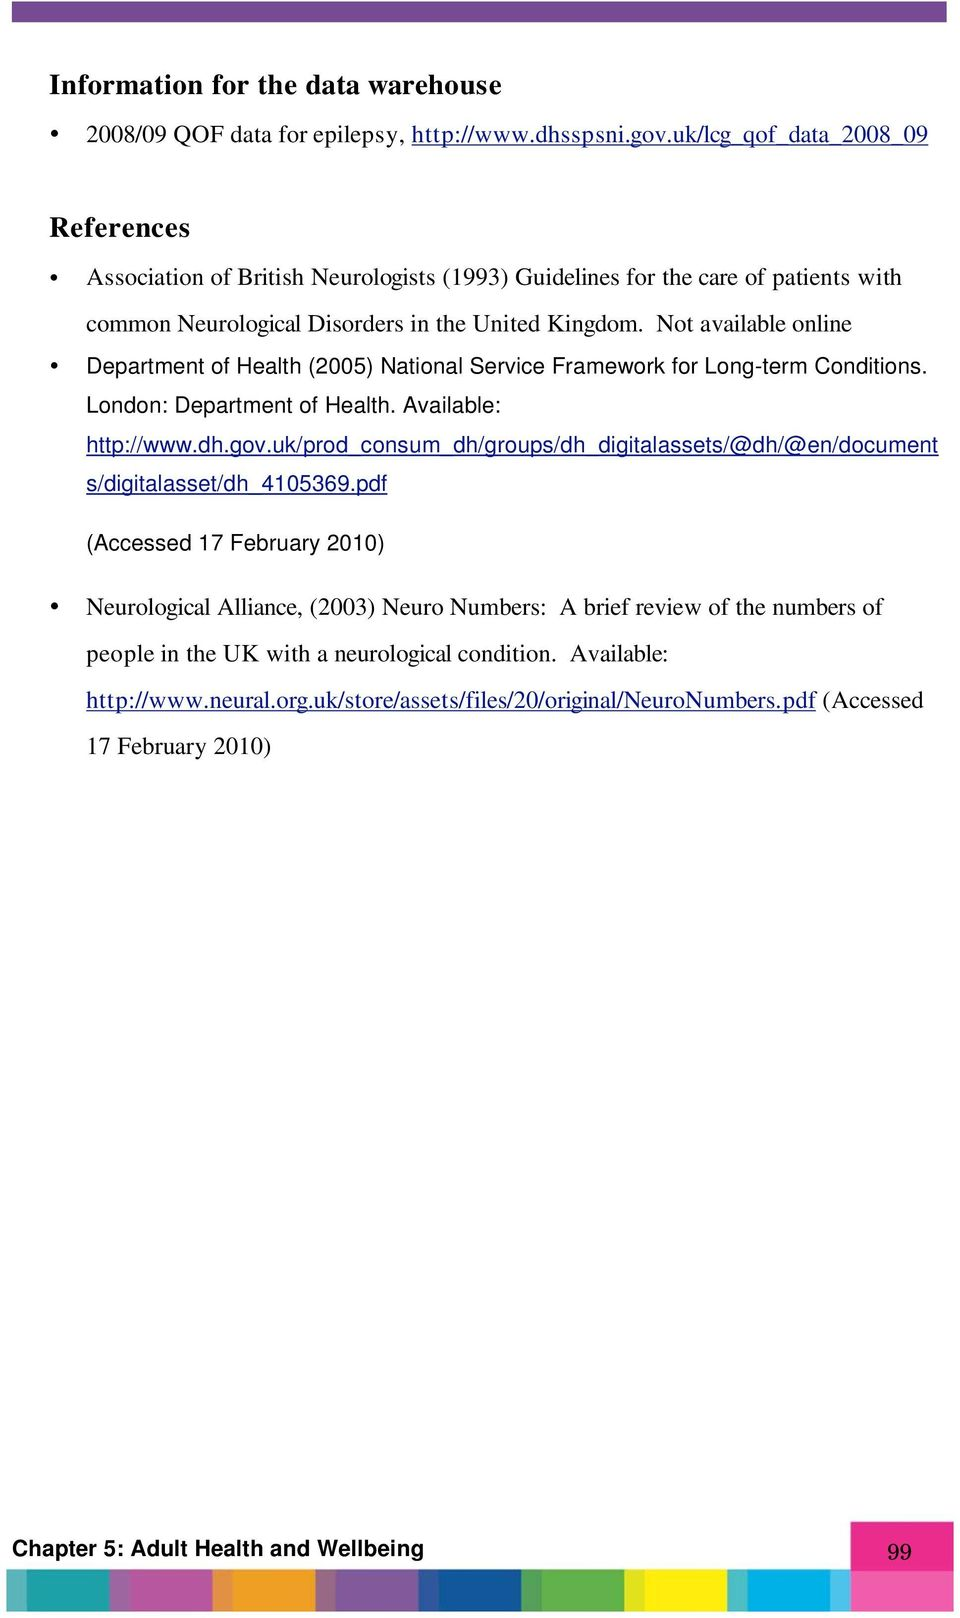 Not available online Department of Health (2005) National Service Framework for Long-term Conditions. London: Department of Health. Available: http://www.dh.gov.